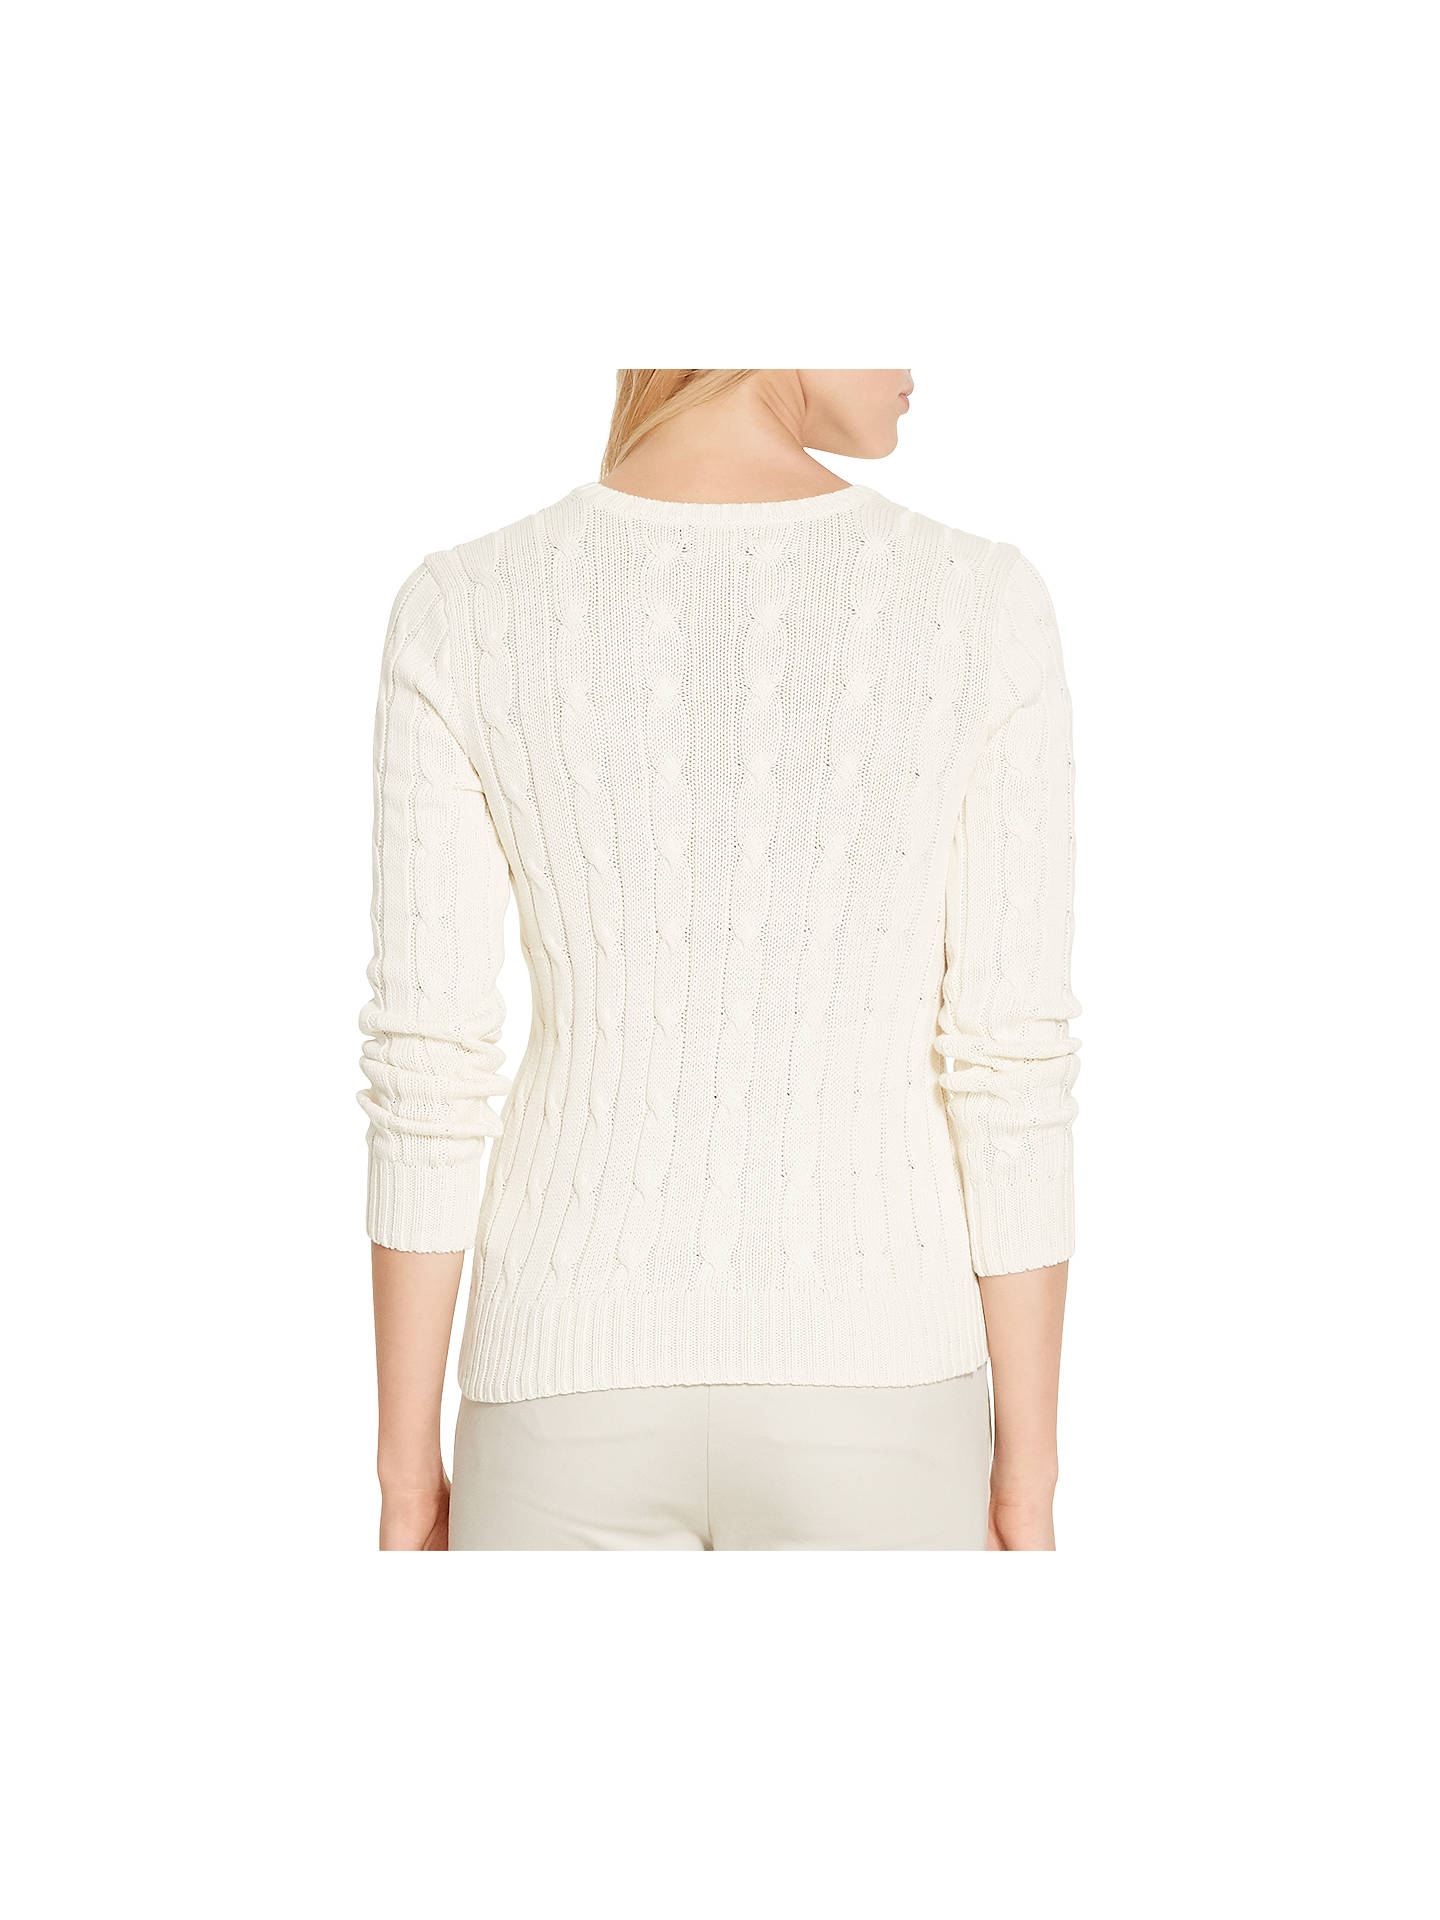 Ralph Neck Cable Lauren V JumperCream Knit Polo eIbWEHYD29